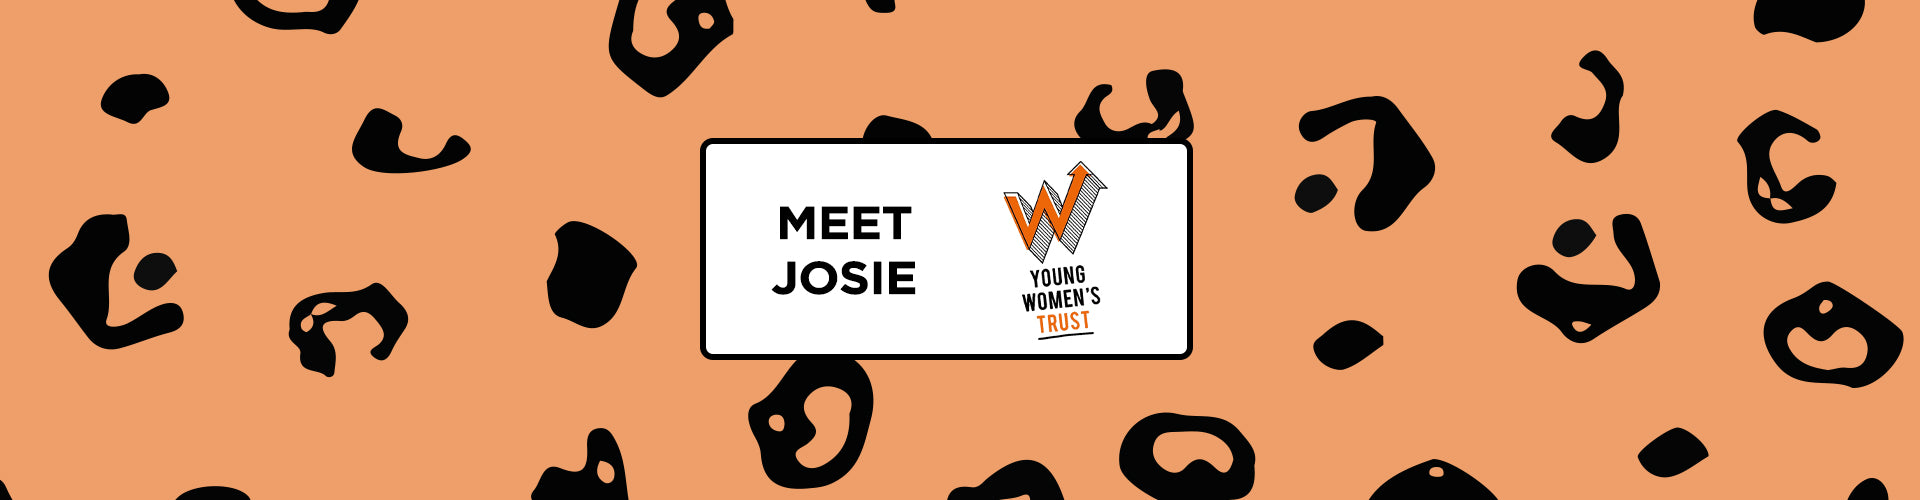 Meet Josie - Advisory Panel member for Young Women's Trust